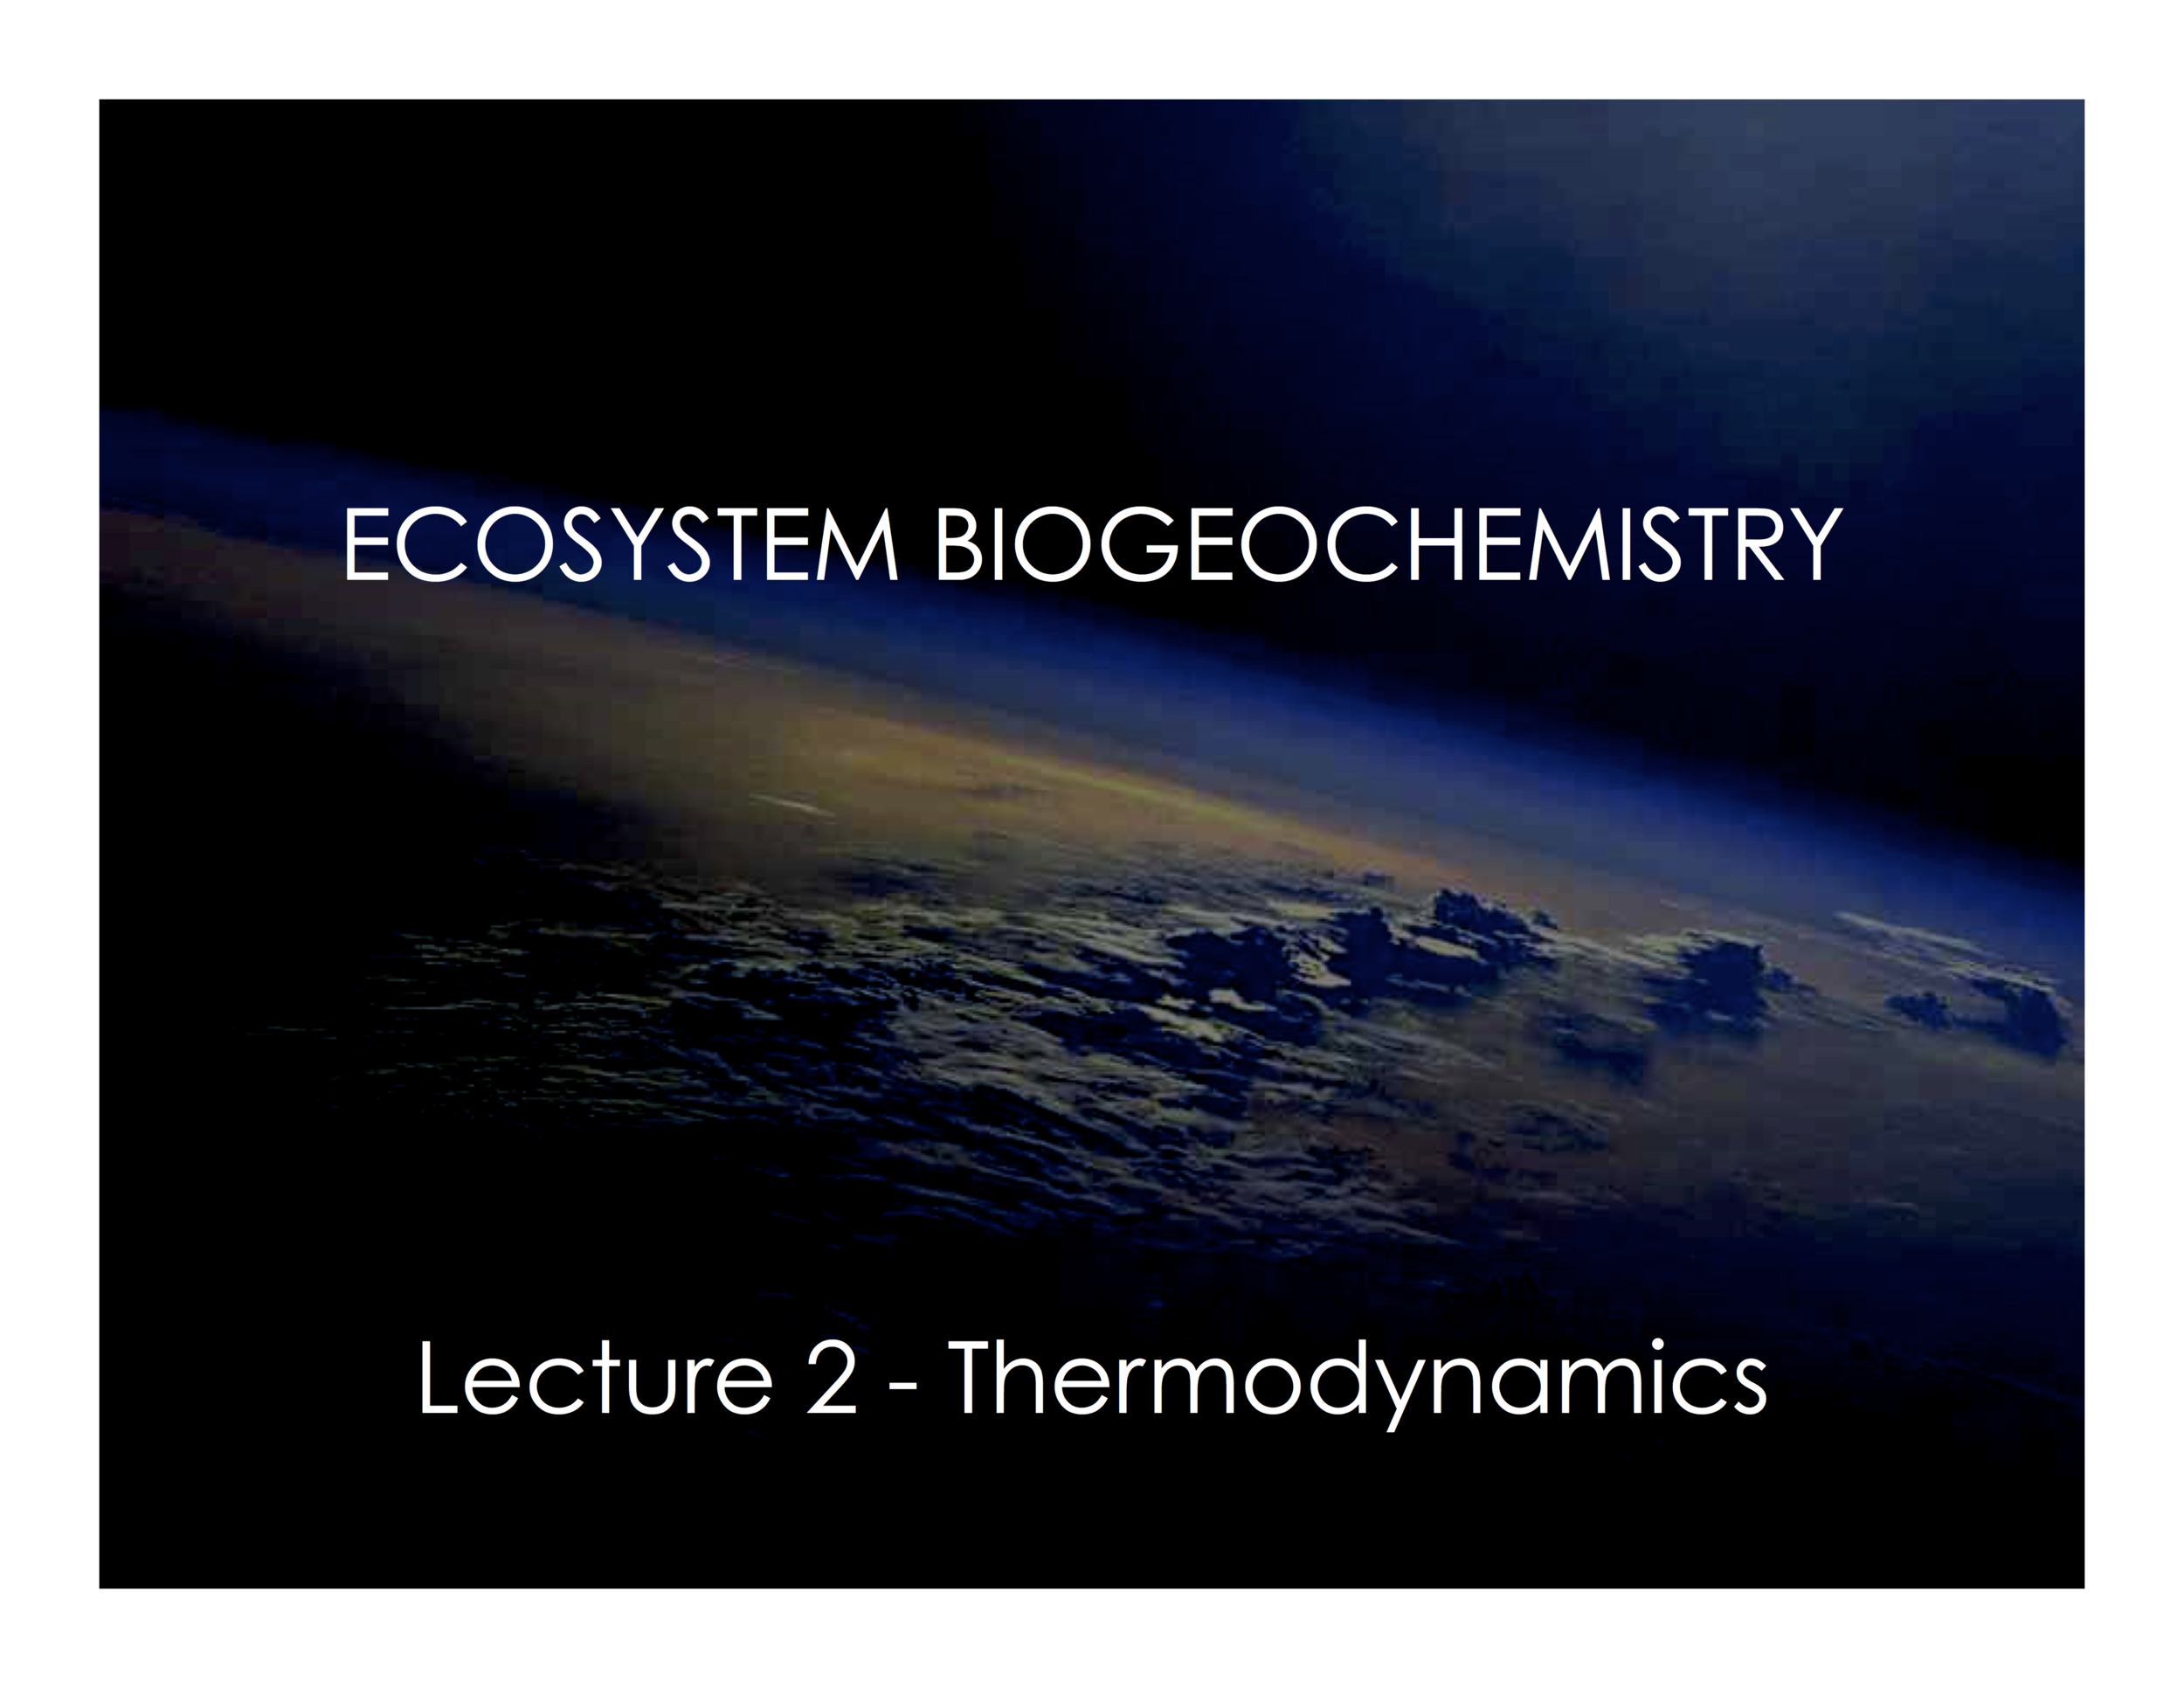 Lecture 2 - Thermodynamics - COVER.png